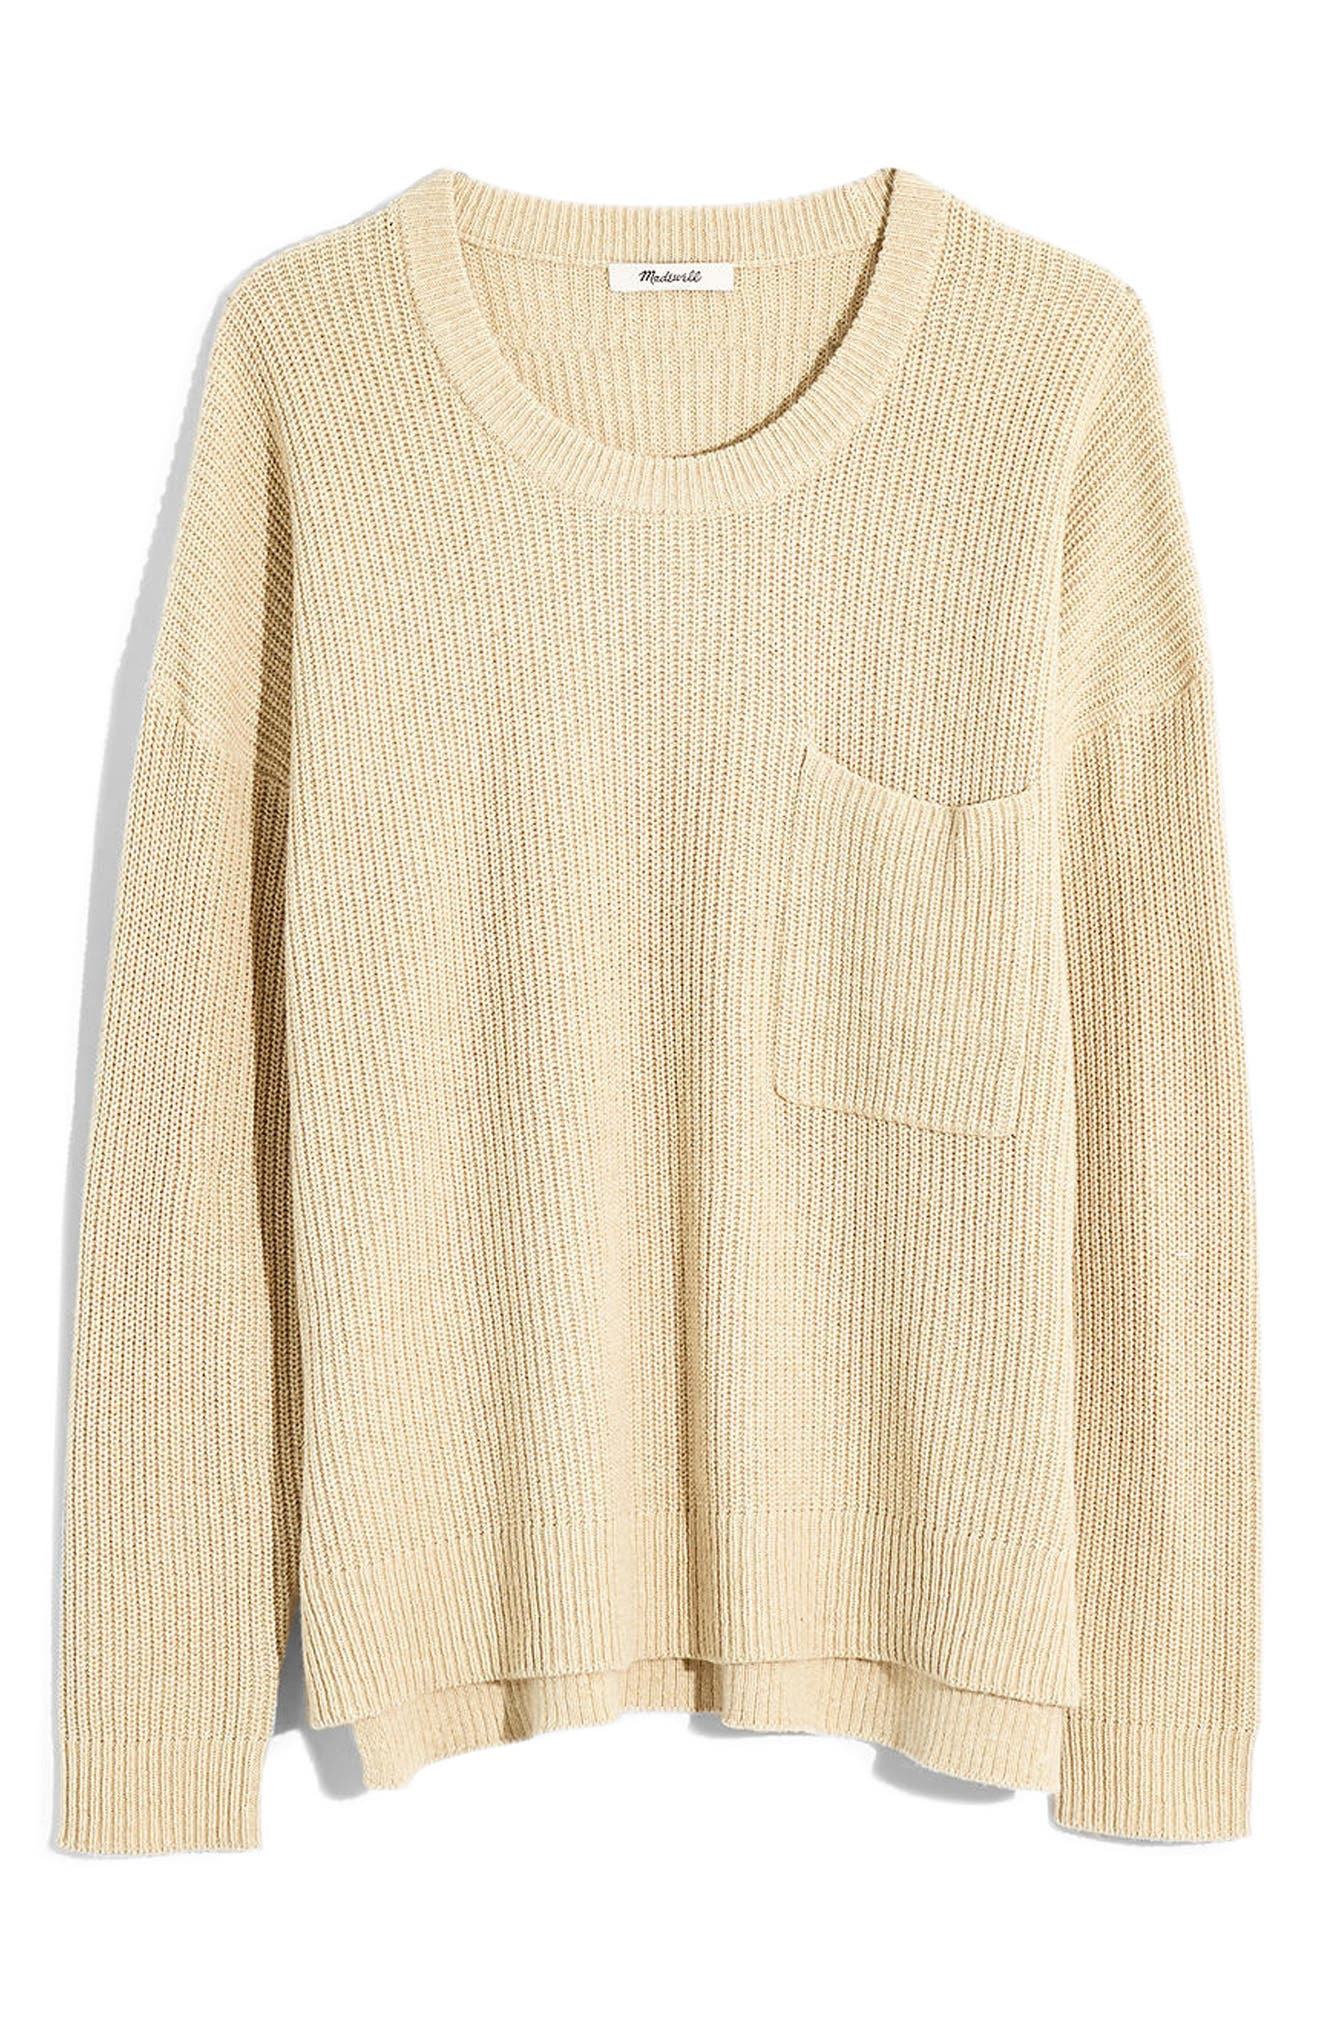 Madewell Thompson Pocket Pullover Sweater (Regular & Plus Size)